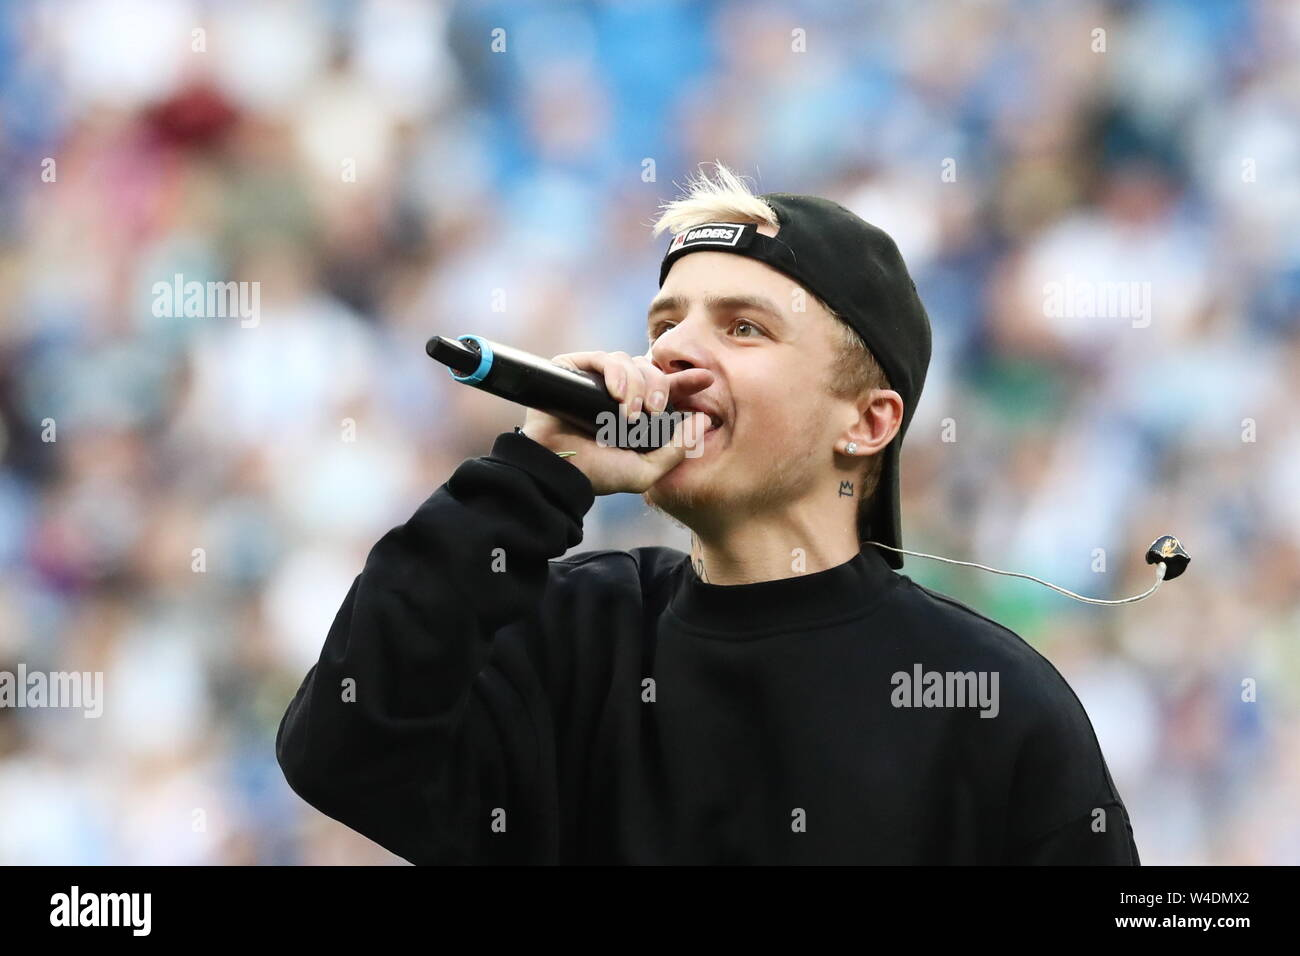 Moscow, Russia  21st July, 2019  MOSCOW, RUSSIA - JULY 21